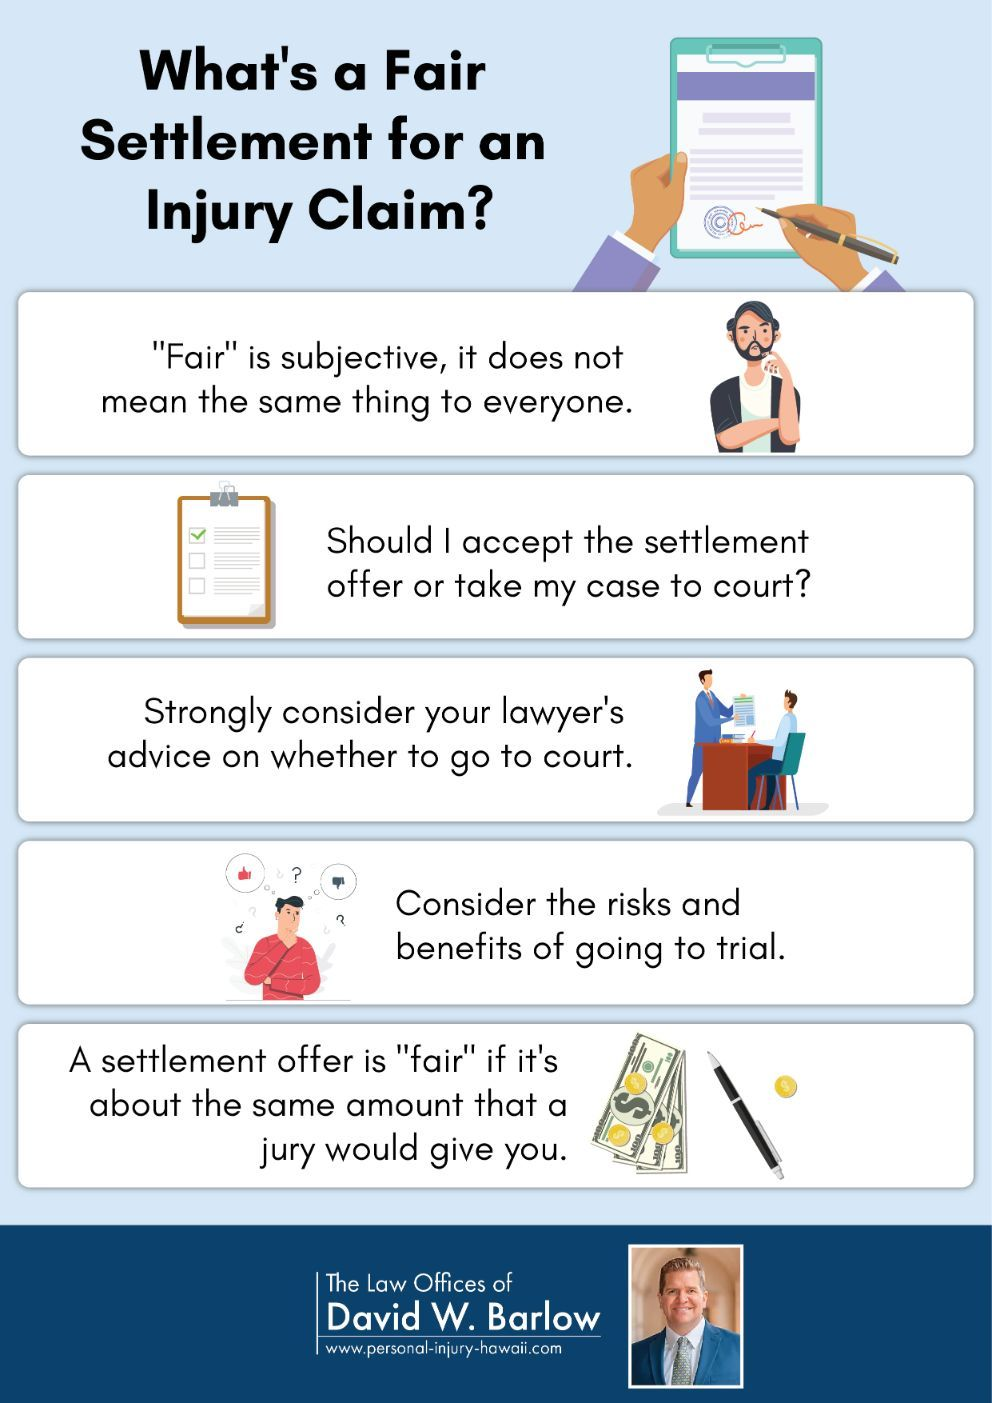 Hawaii Fair Settlement Offer In 2020 Injury Injury Claims